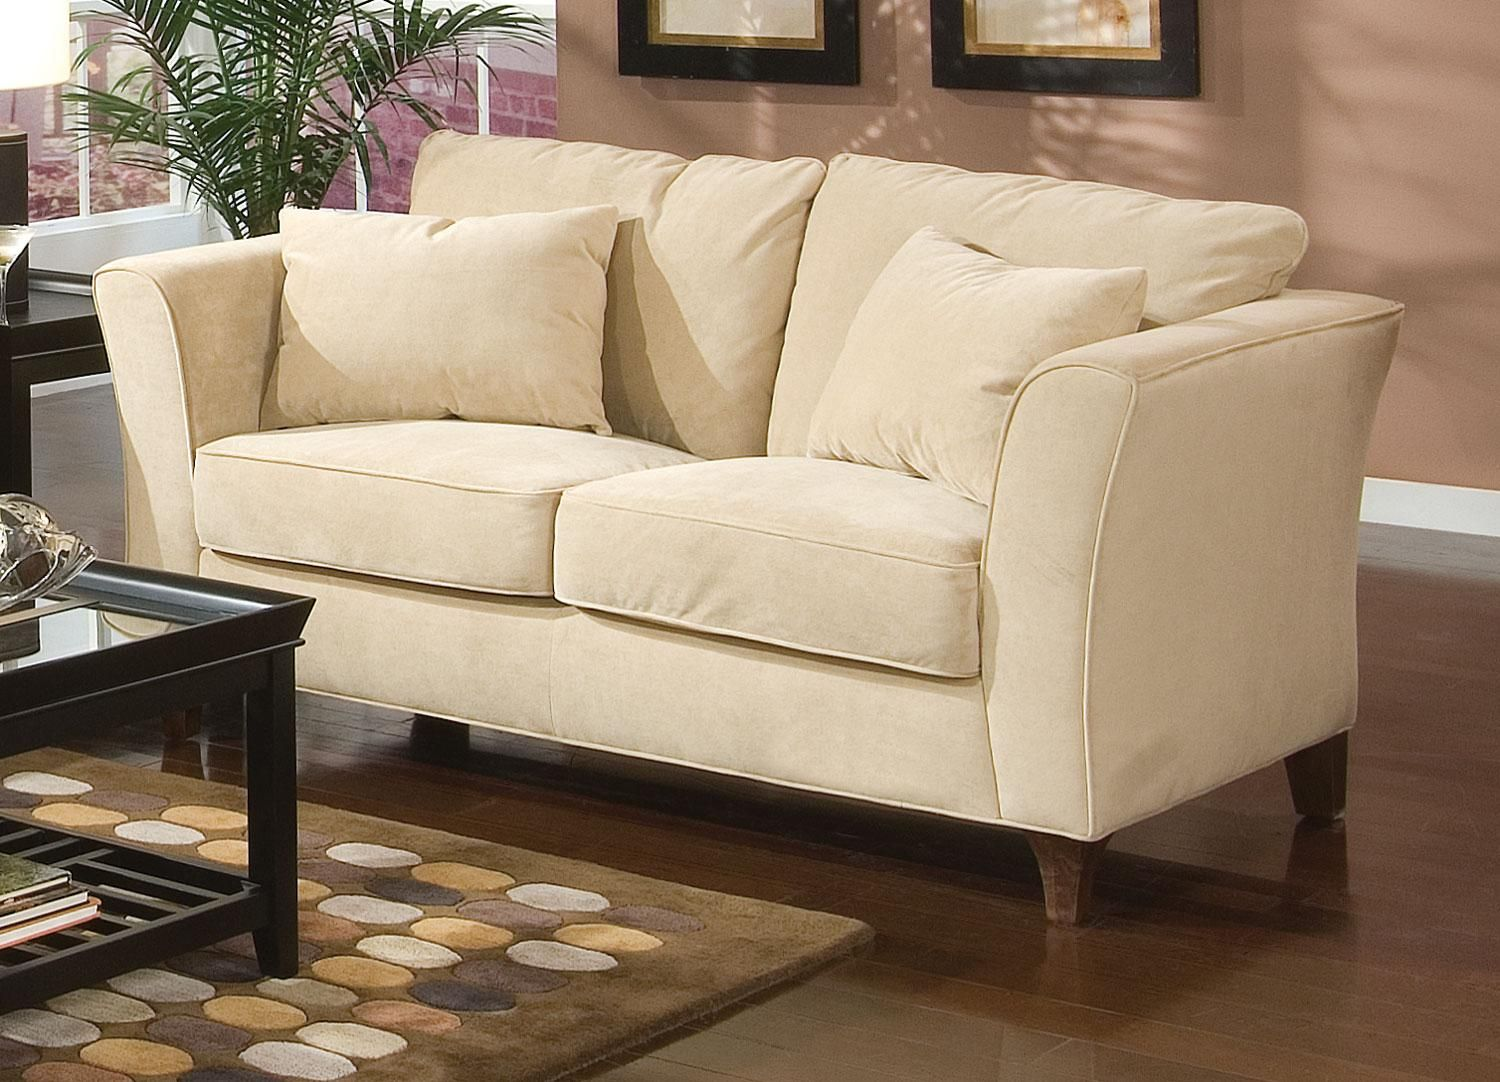 the park place cream loveseat has a retro contemporary style with rh pinterest it